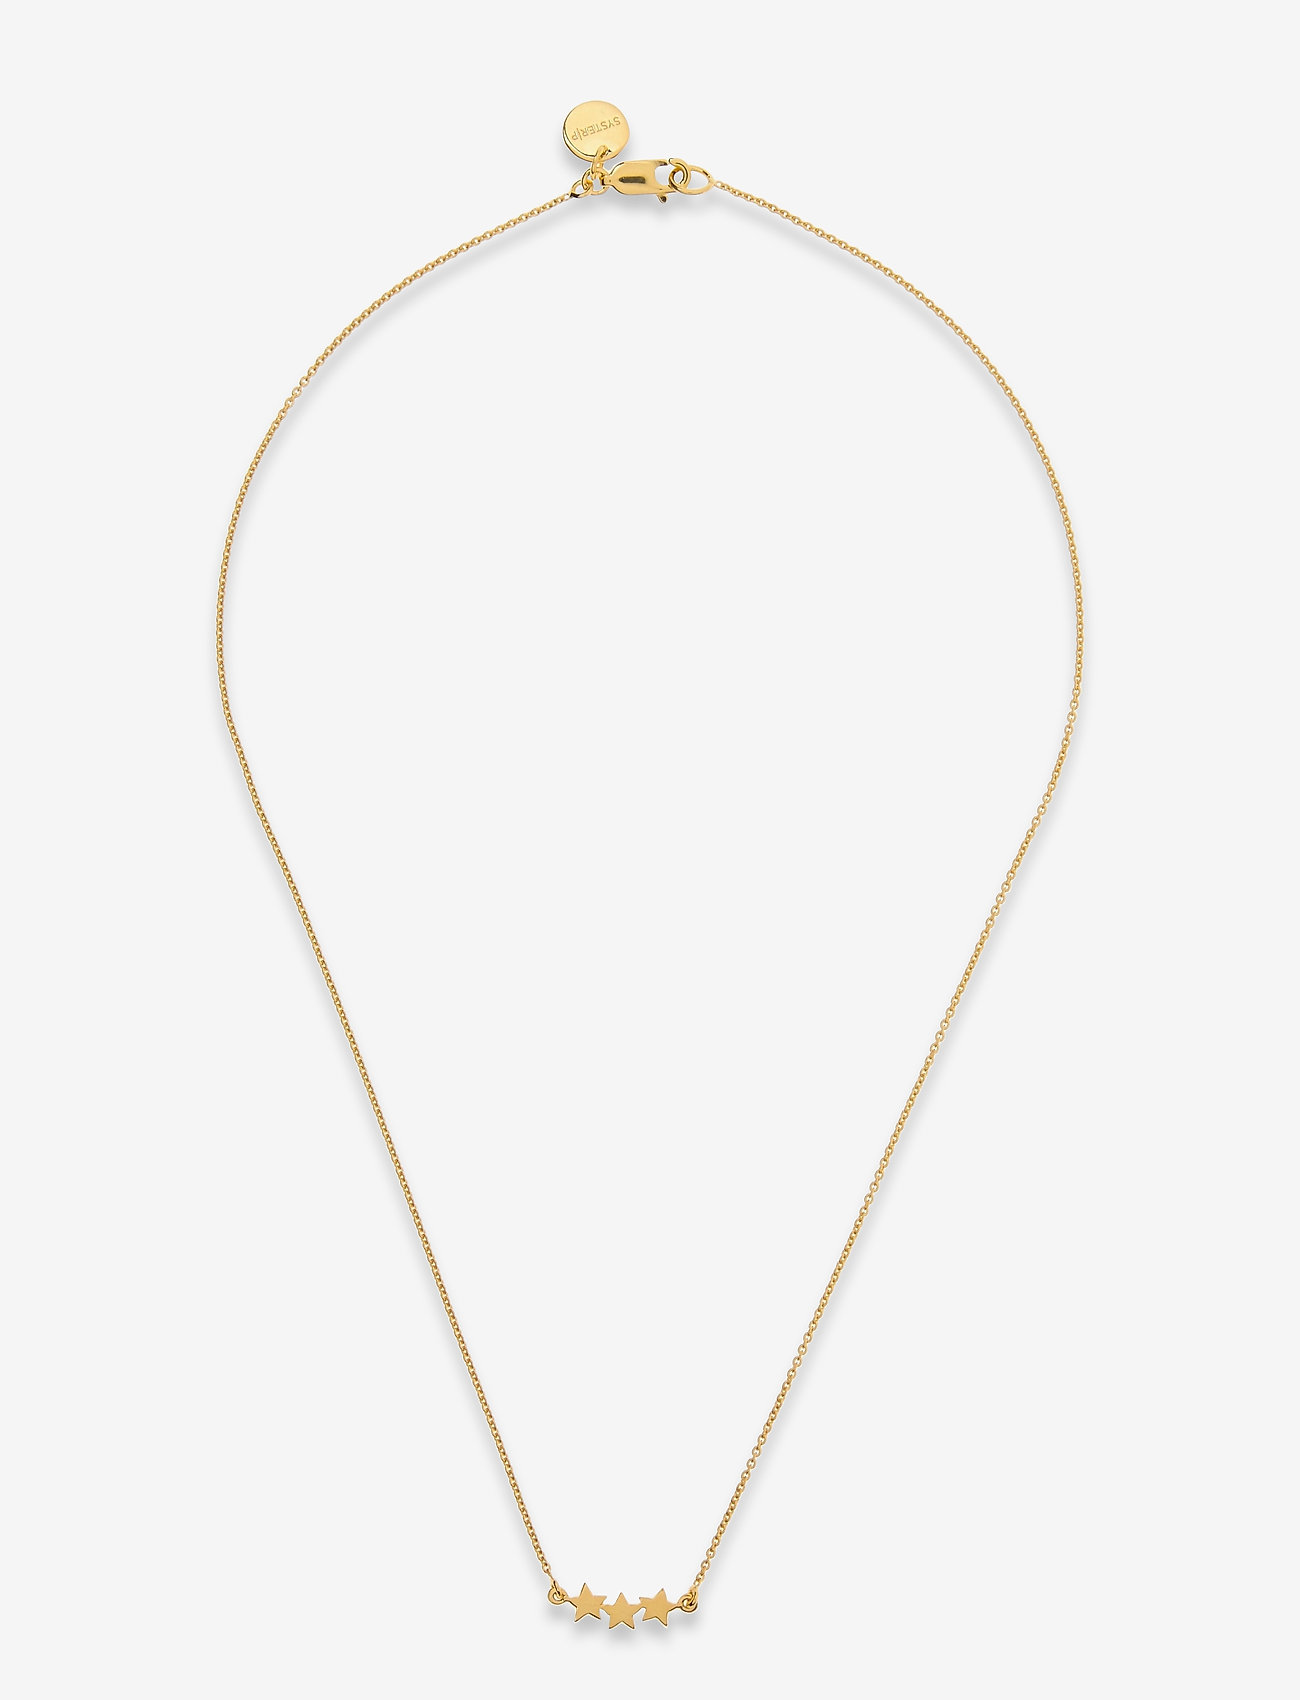 Syster P - Snap Necklace Triple Star Plain Gold - gold - 0